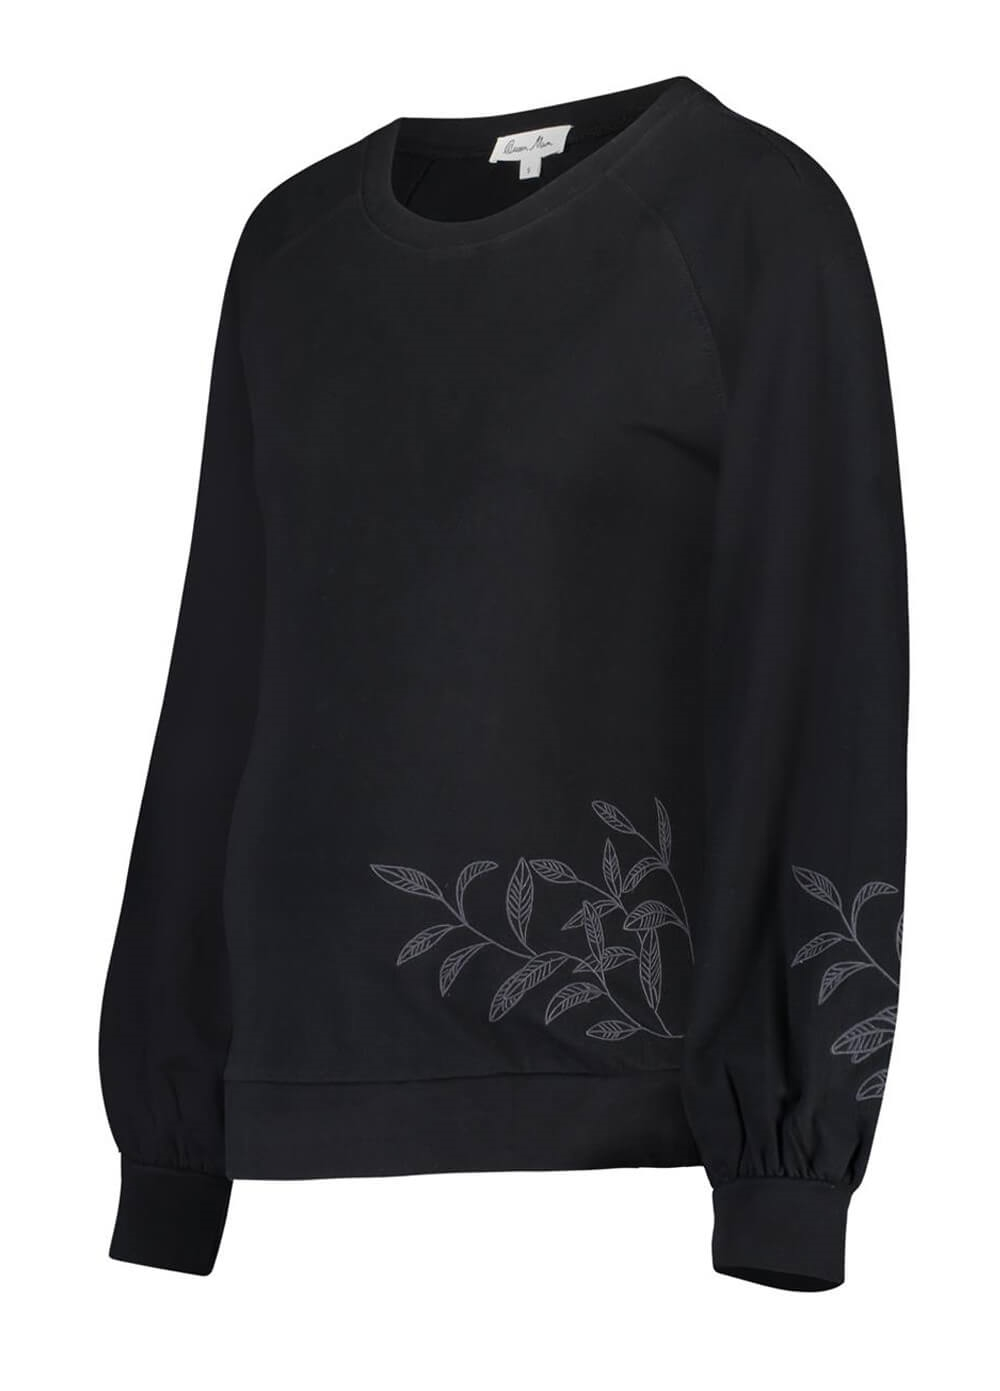 Queen mum - Embroidered Leaf Organic Maternity Sweater | Queen Bee